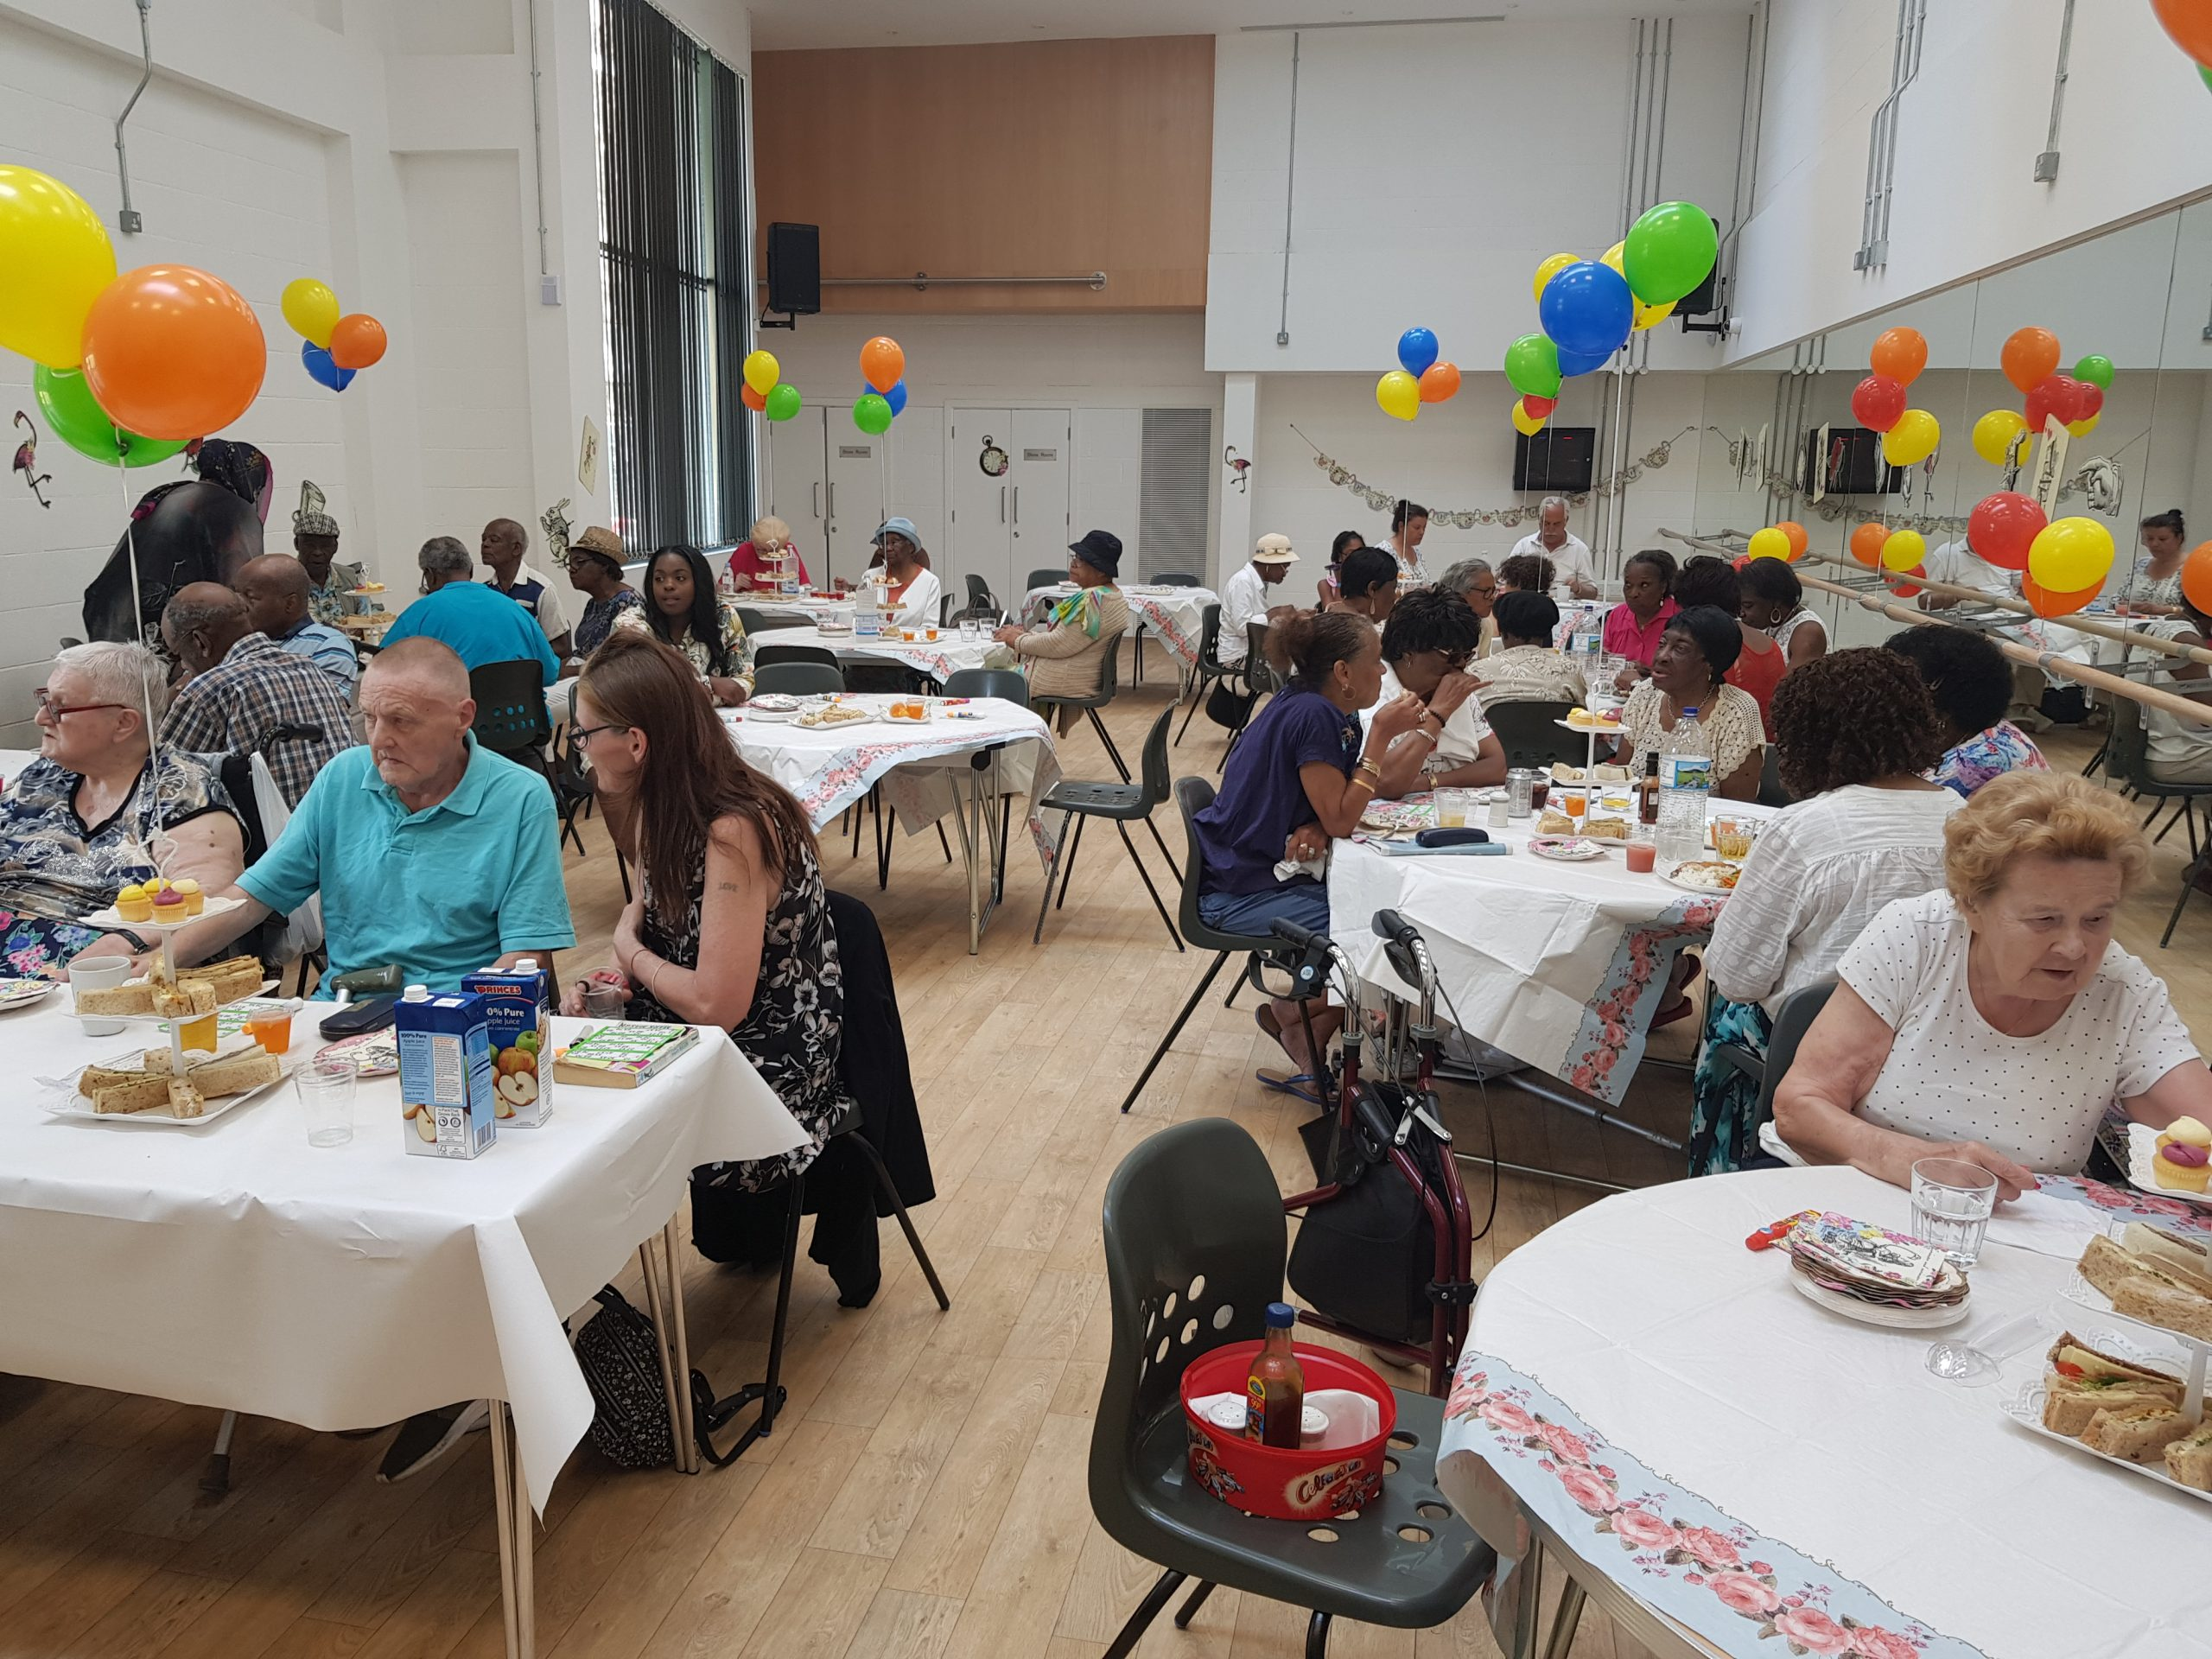 Local residents having a meal in the Community hub before Covid-19.